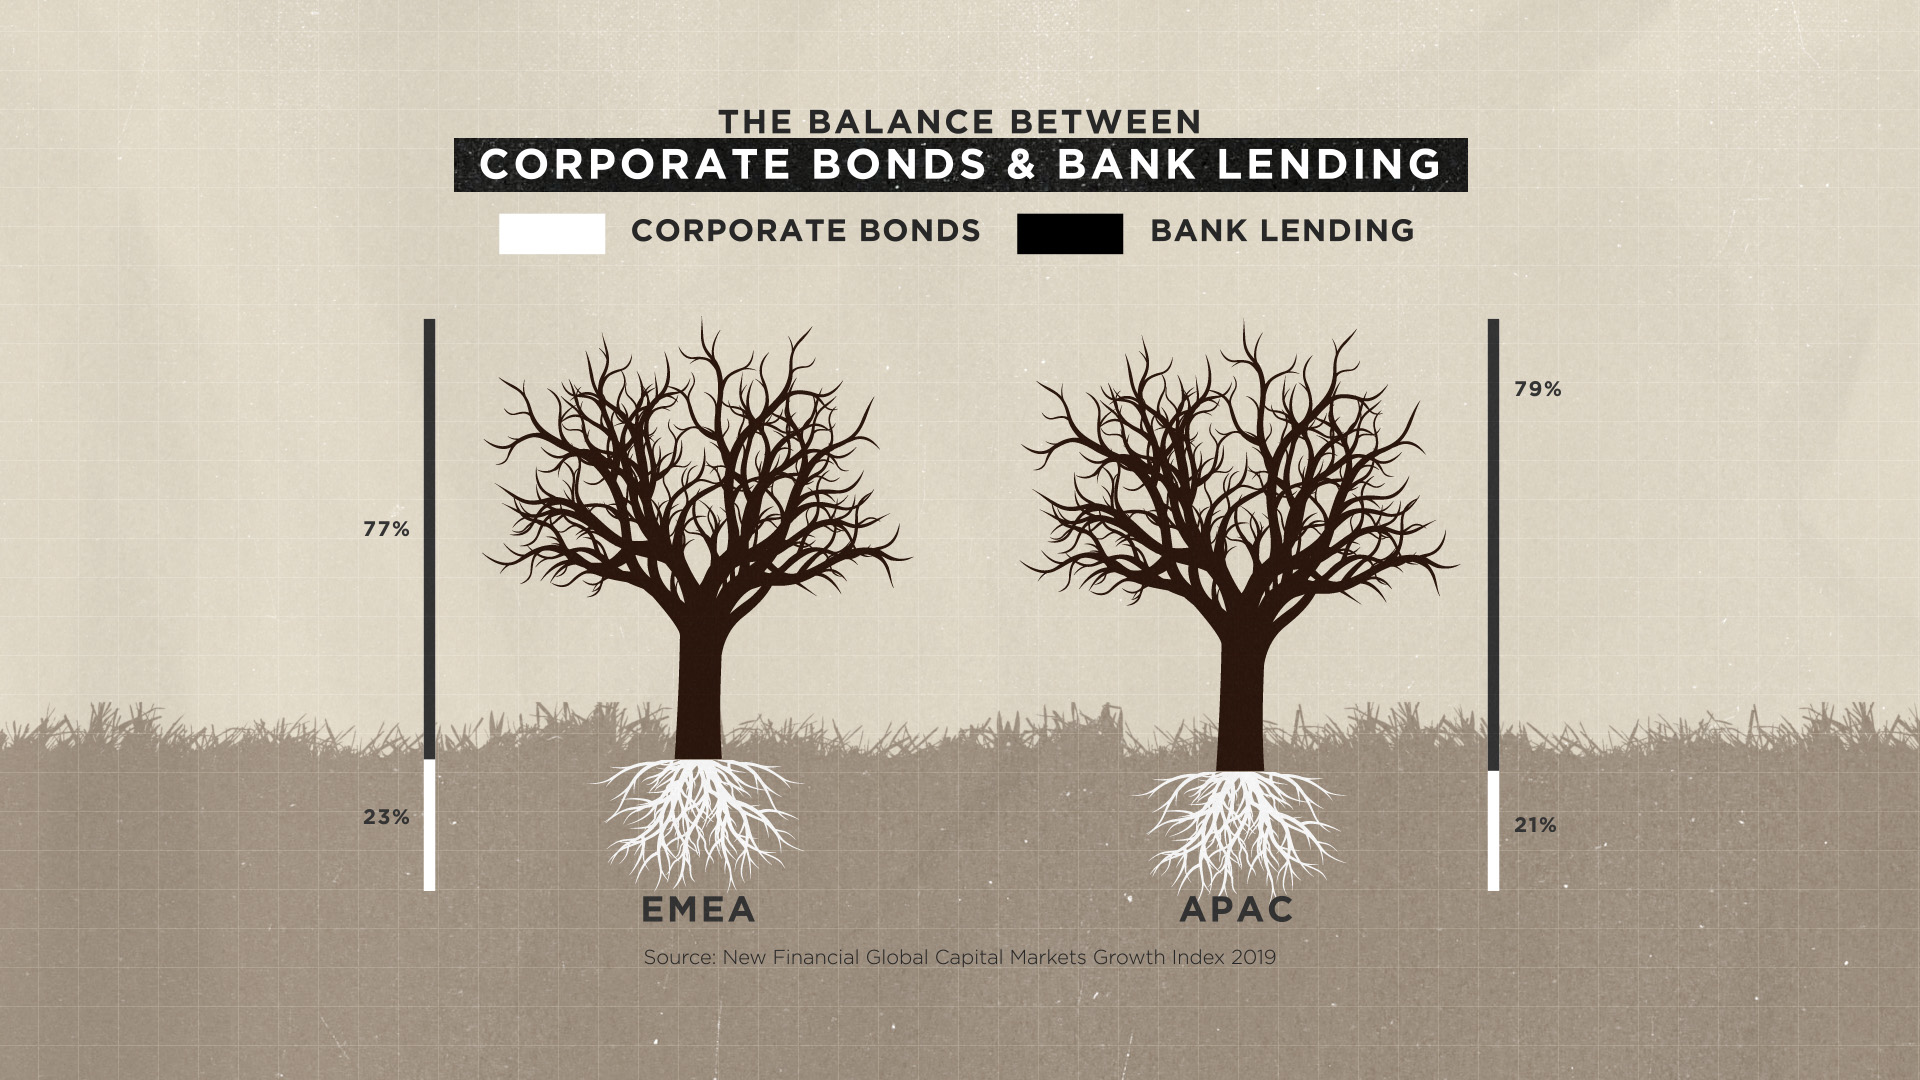 The Balance Between Corporate Bonds & Bank Lending, EMEA & APAC - SIFMA